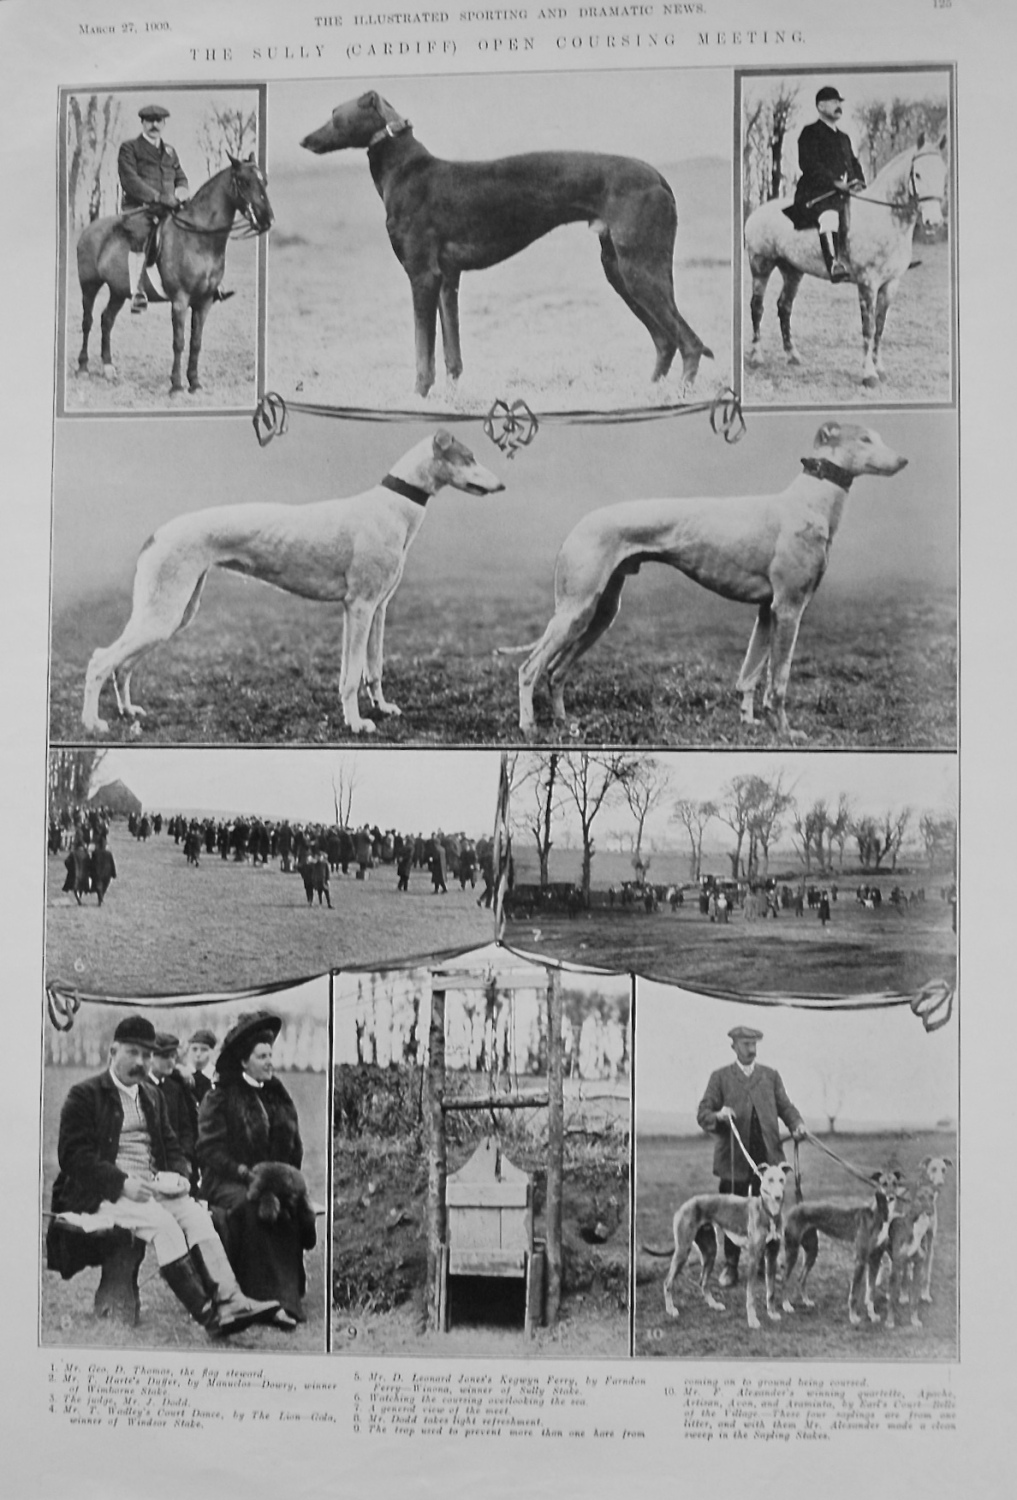 The Sully (Cardiff) Open Coursing Meeting. 1909